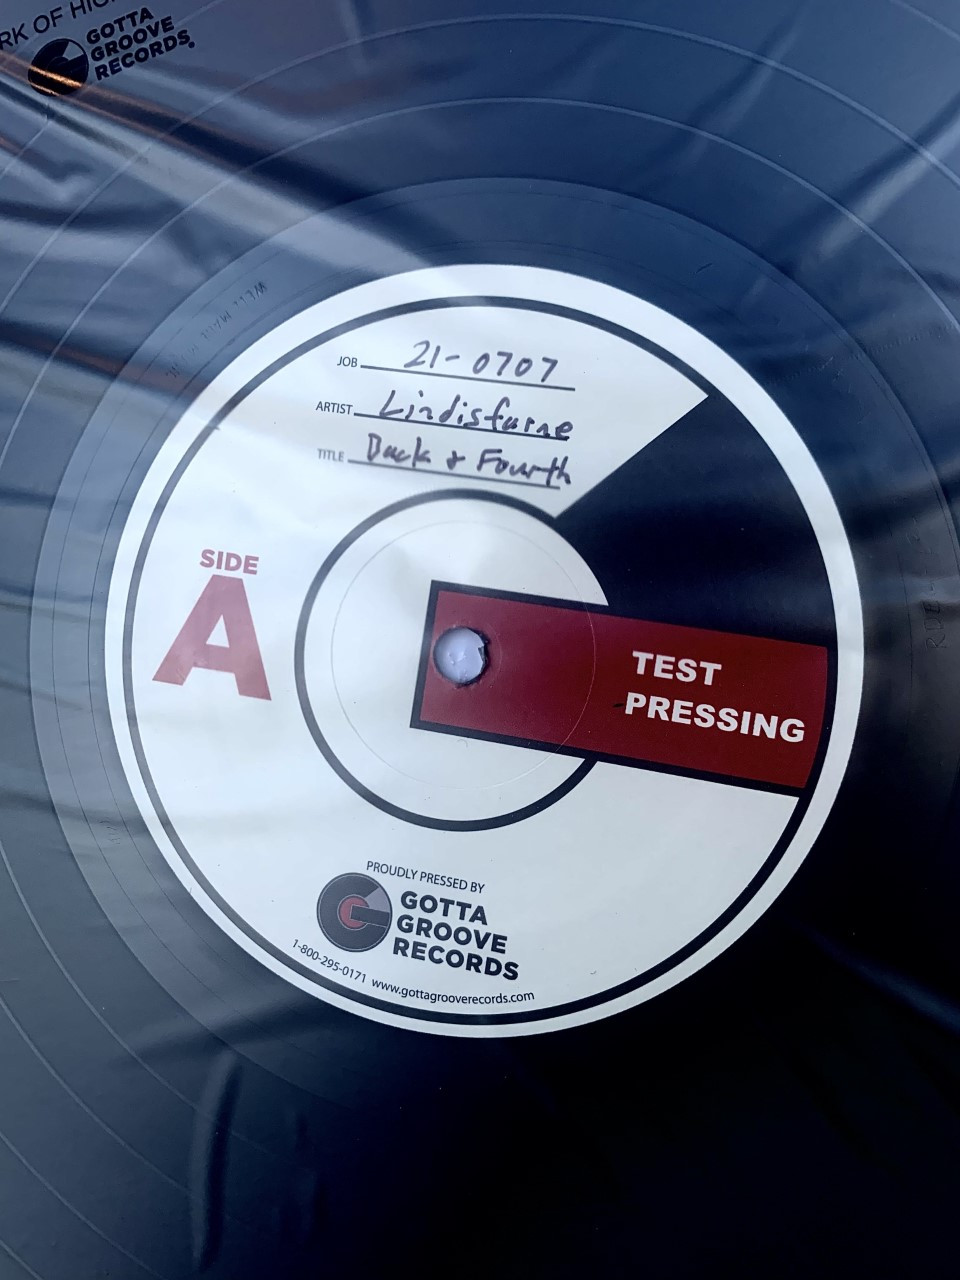 Back And Fourth by Lindisfarne LP Test Pressing available now.